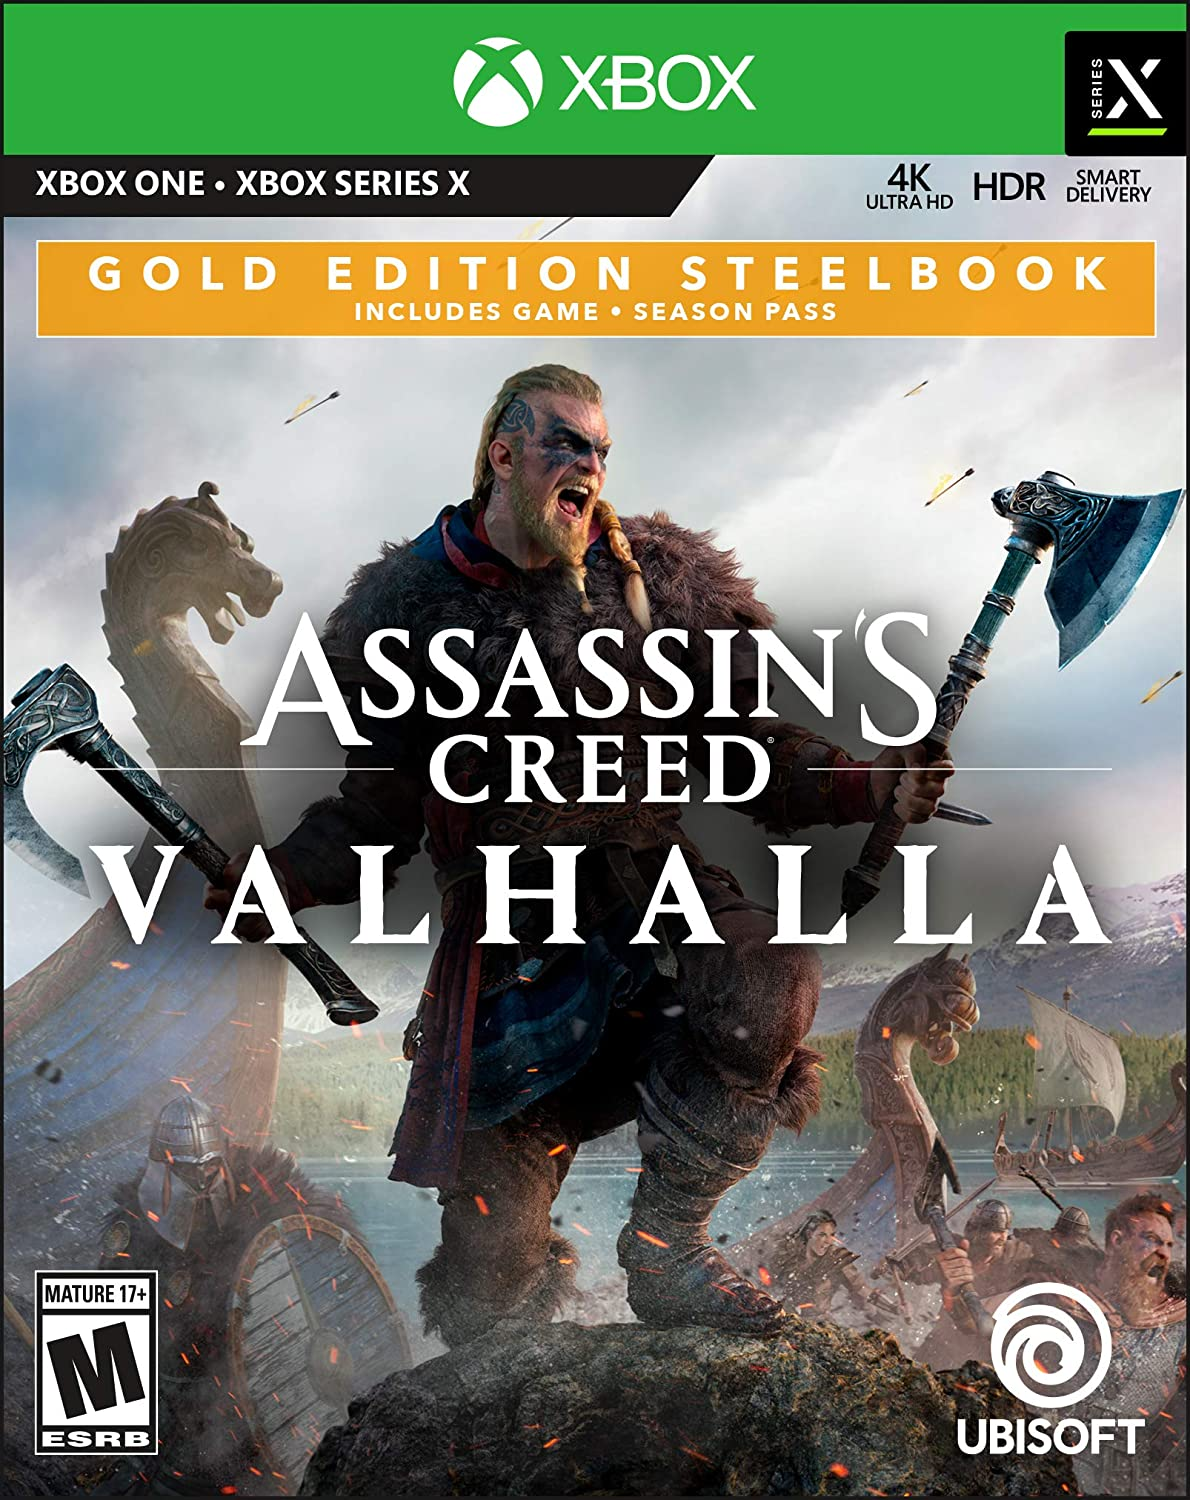 Assassin's Creed Valhalla Xbox Series X|S xbox one gold